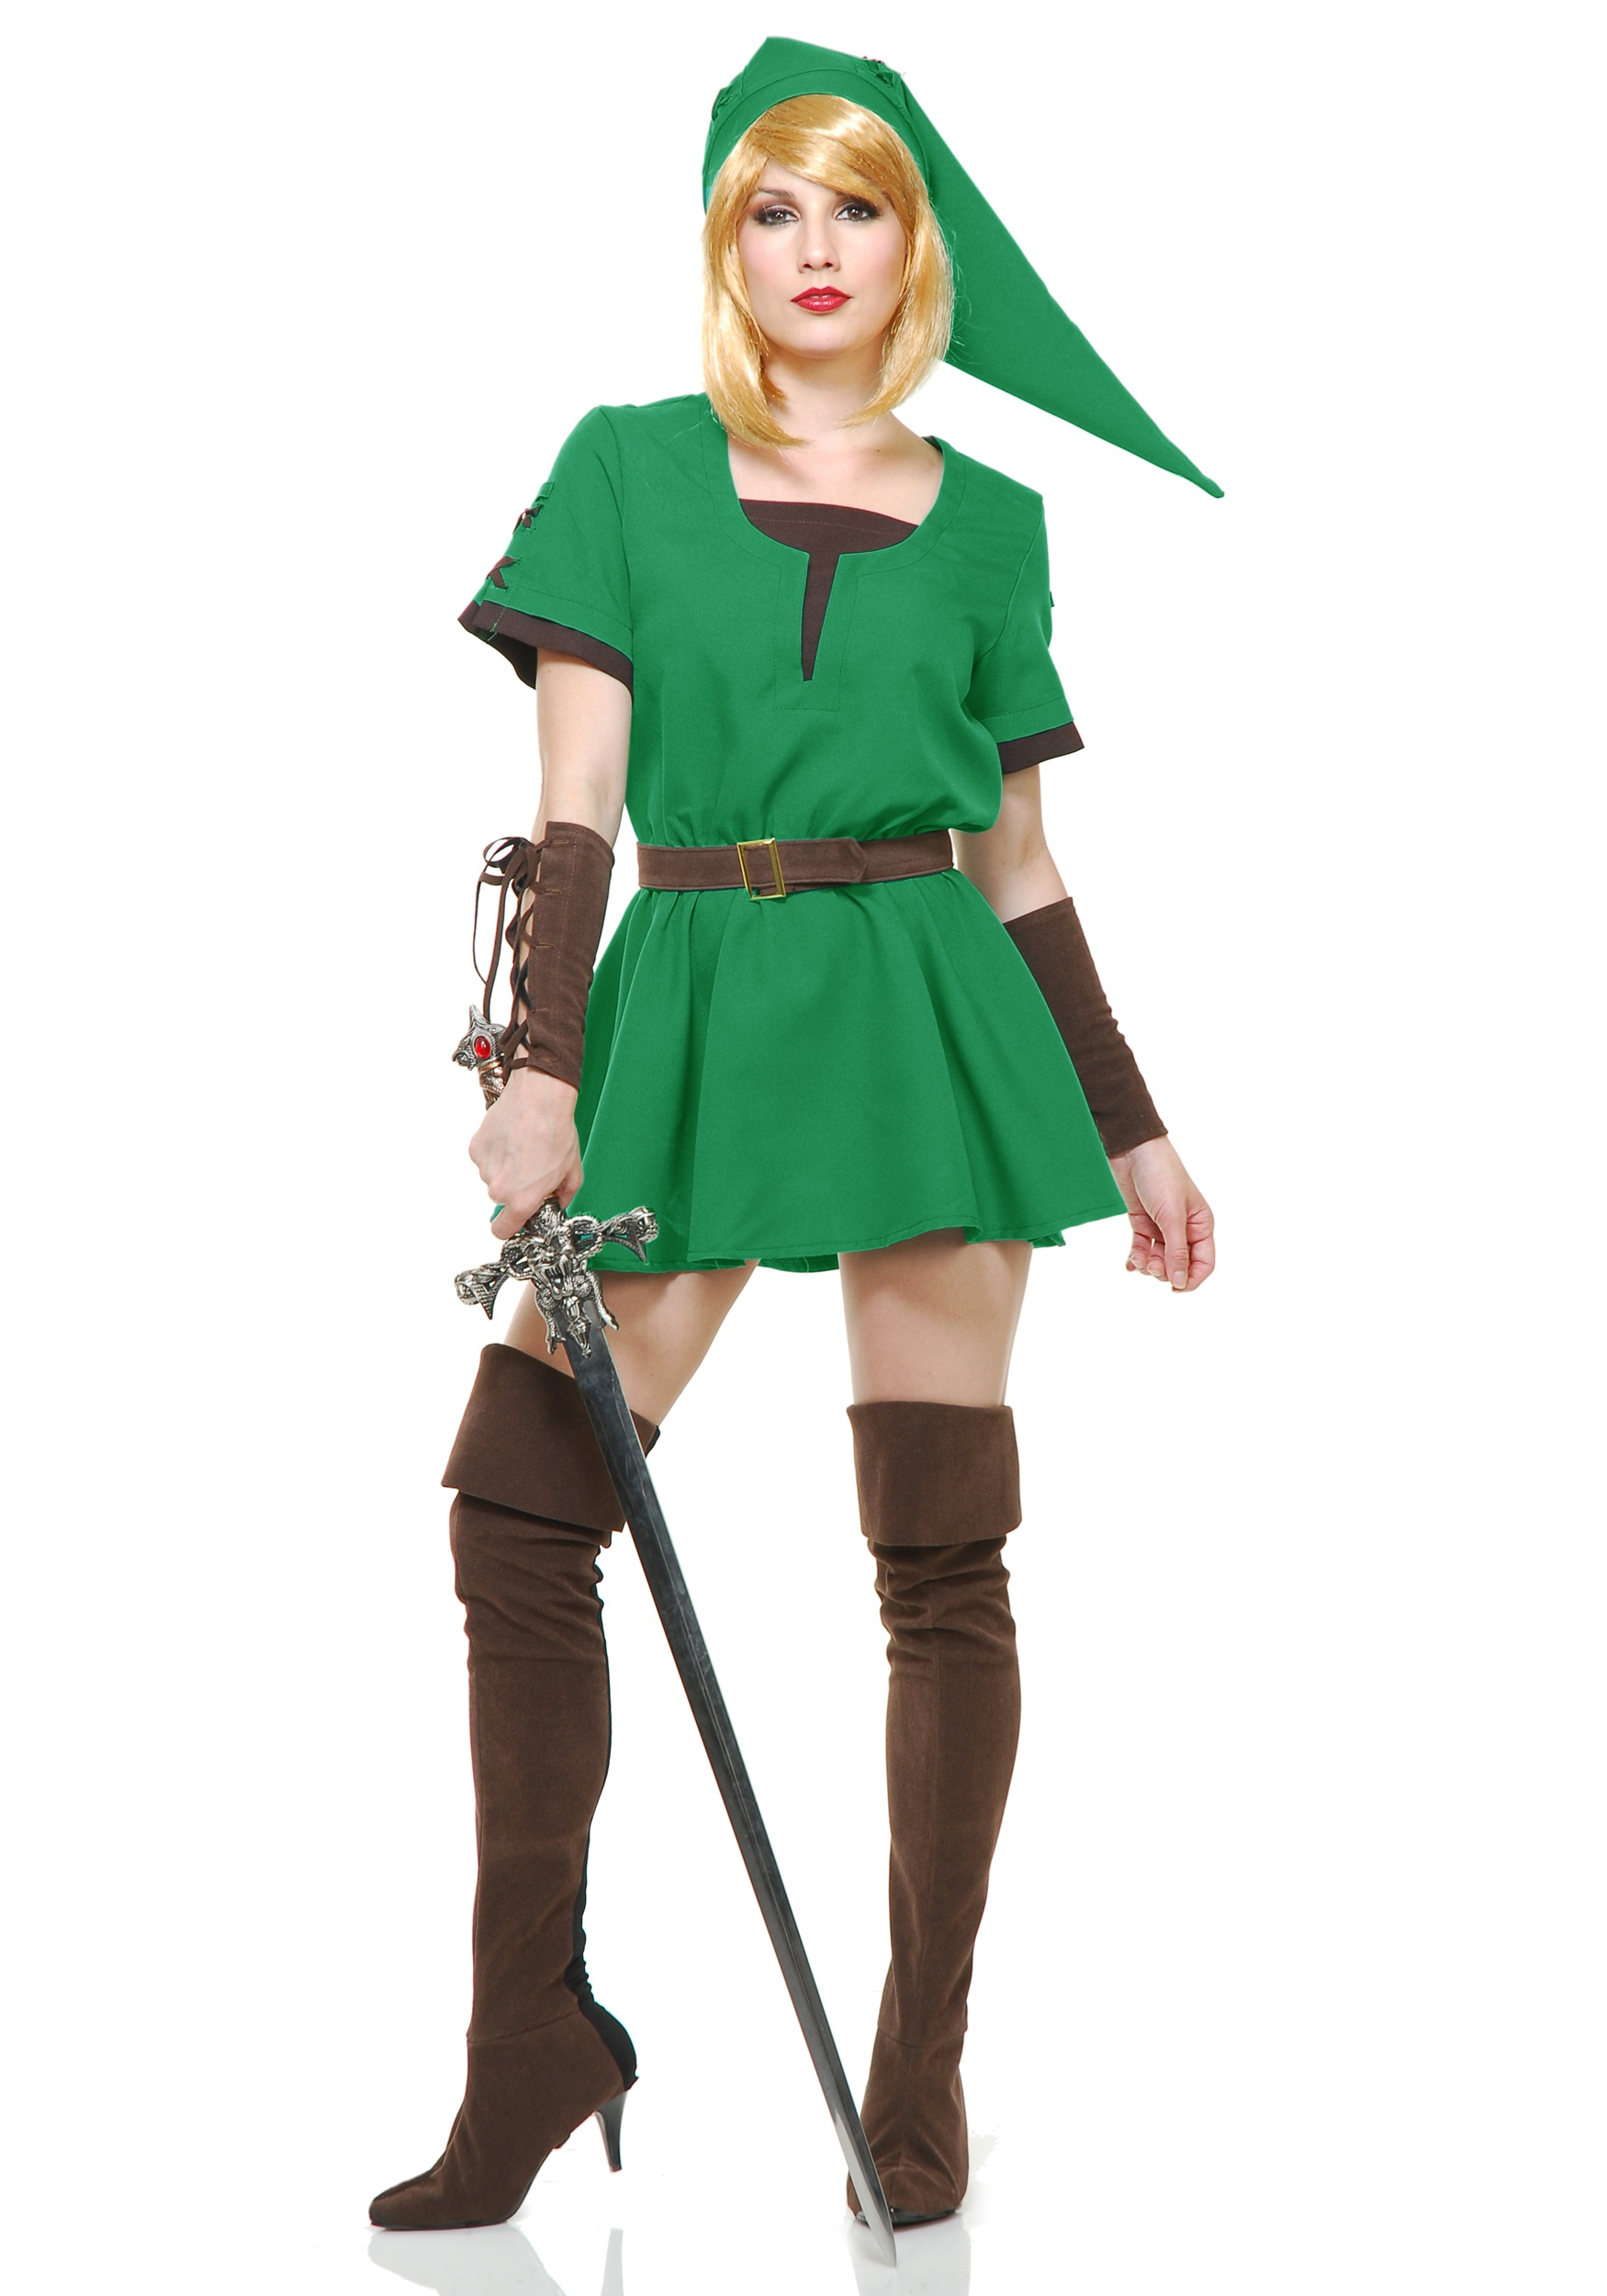 sc 1 st  Halloween Costumes & Elf Warrior Princess Costume - Halloween Costume Ideas 2016